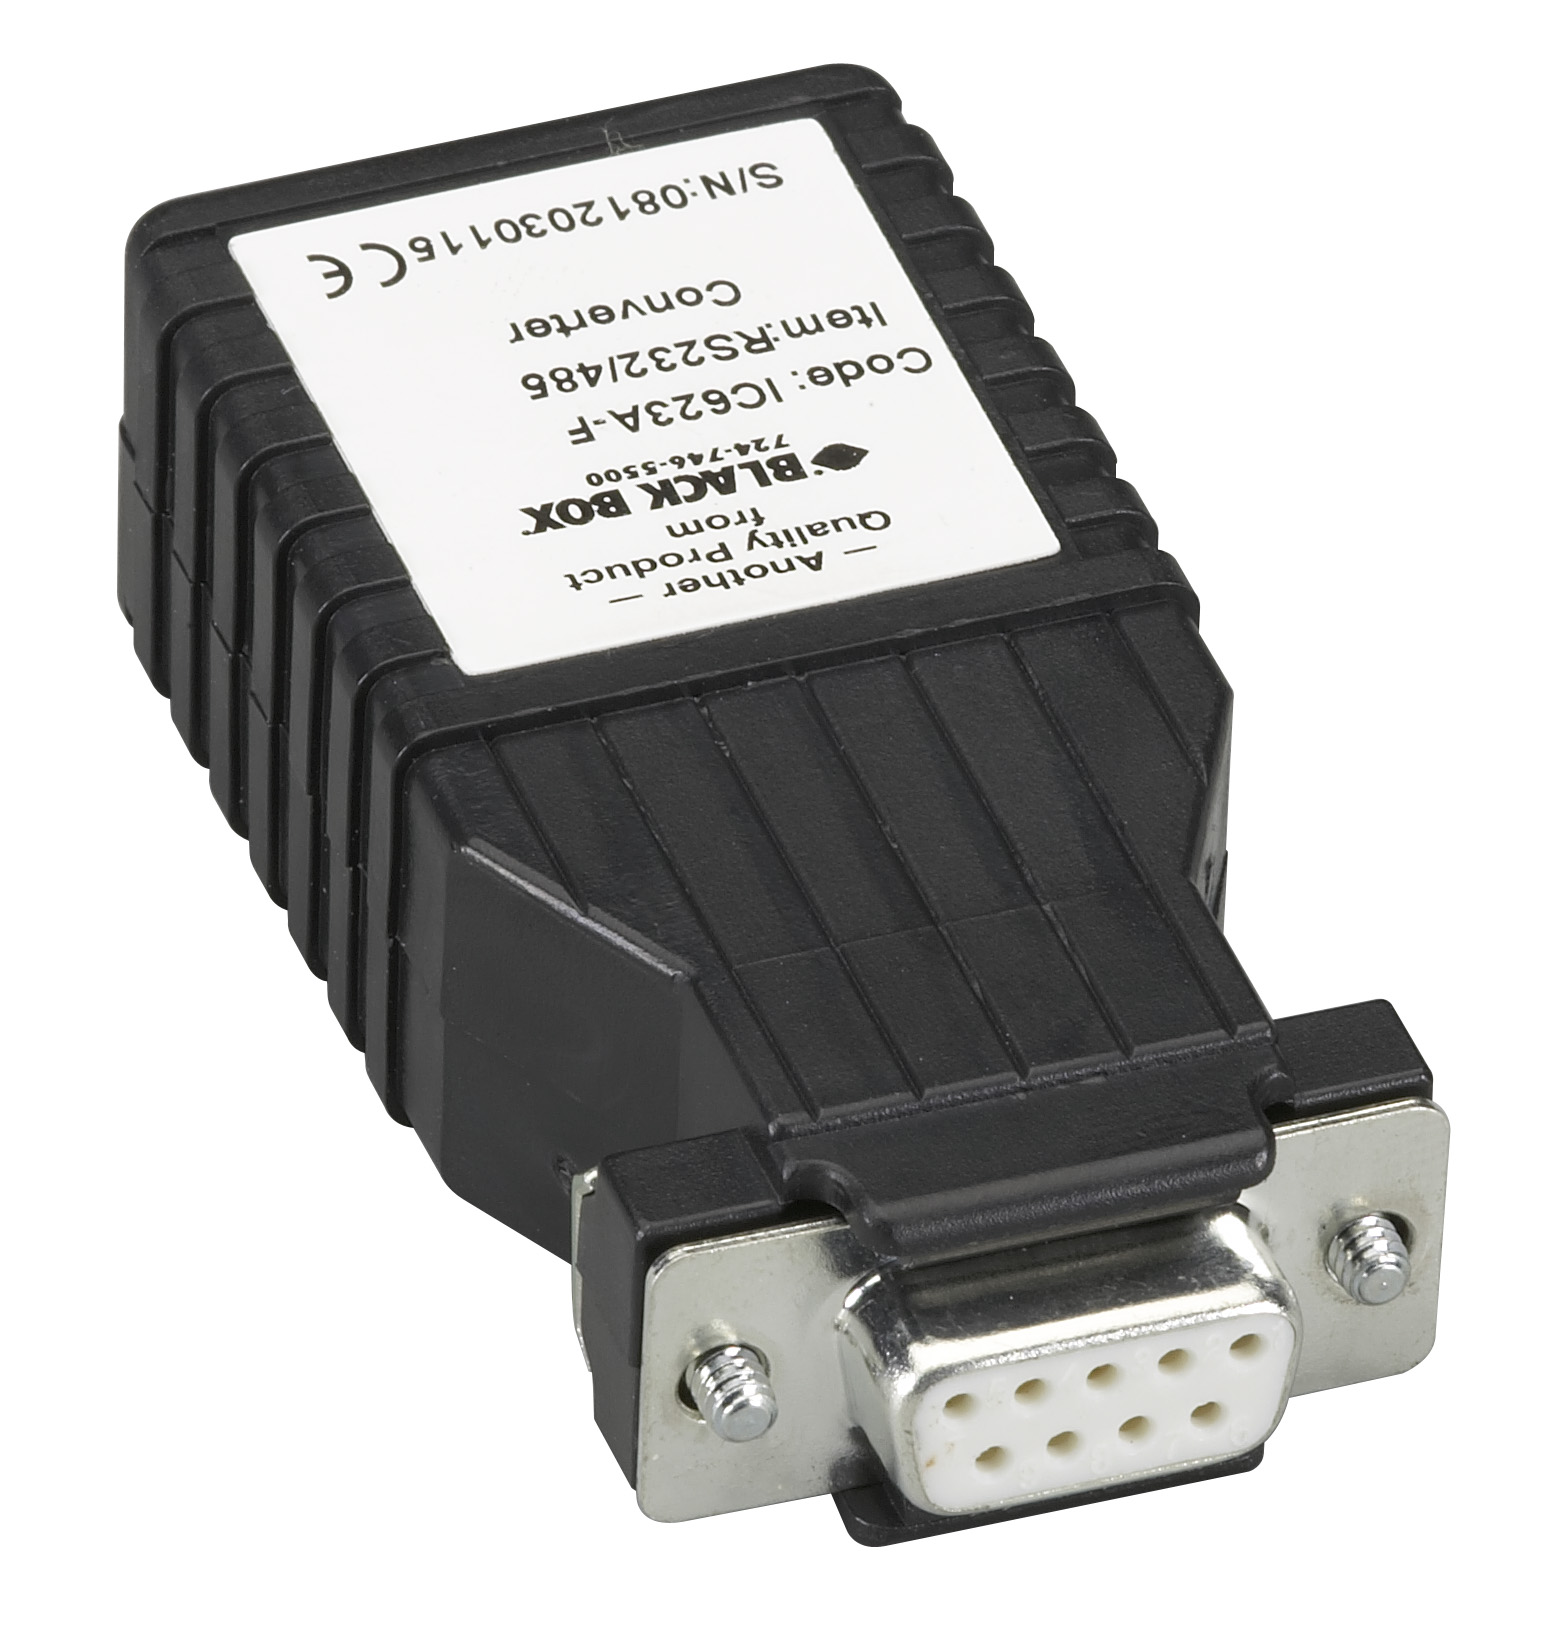 hight resolution of async rs232 to rs485 interface converter db9 to rj11